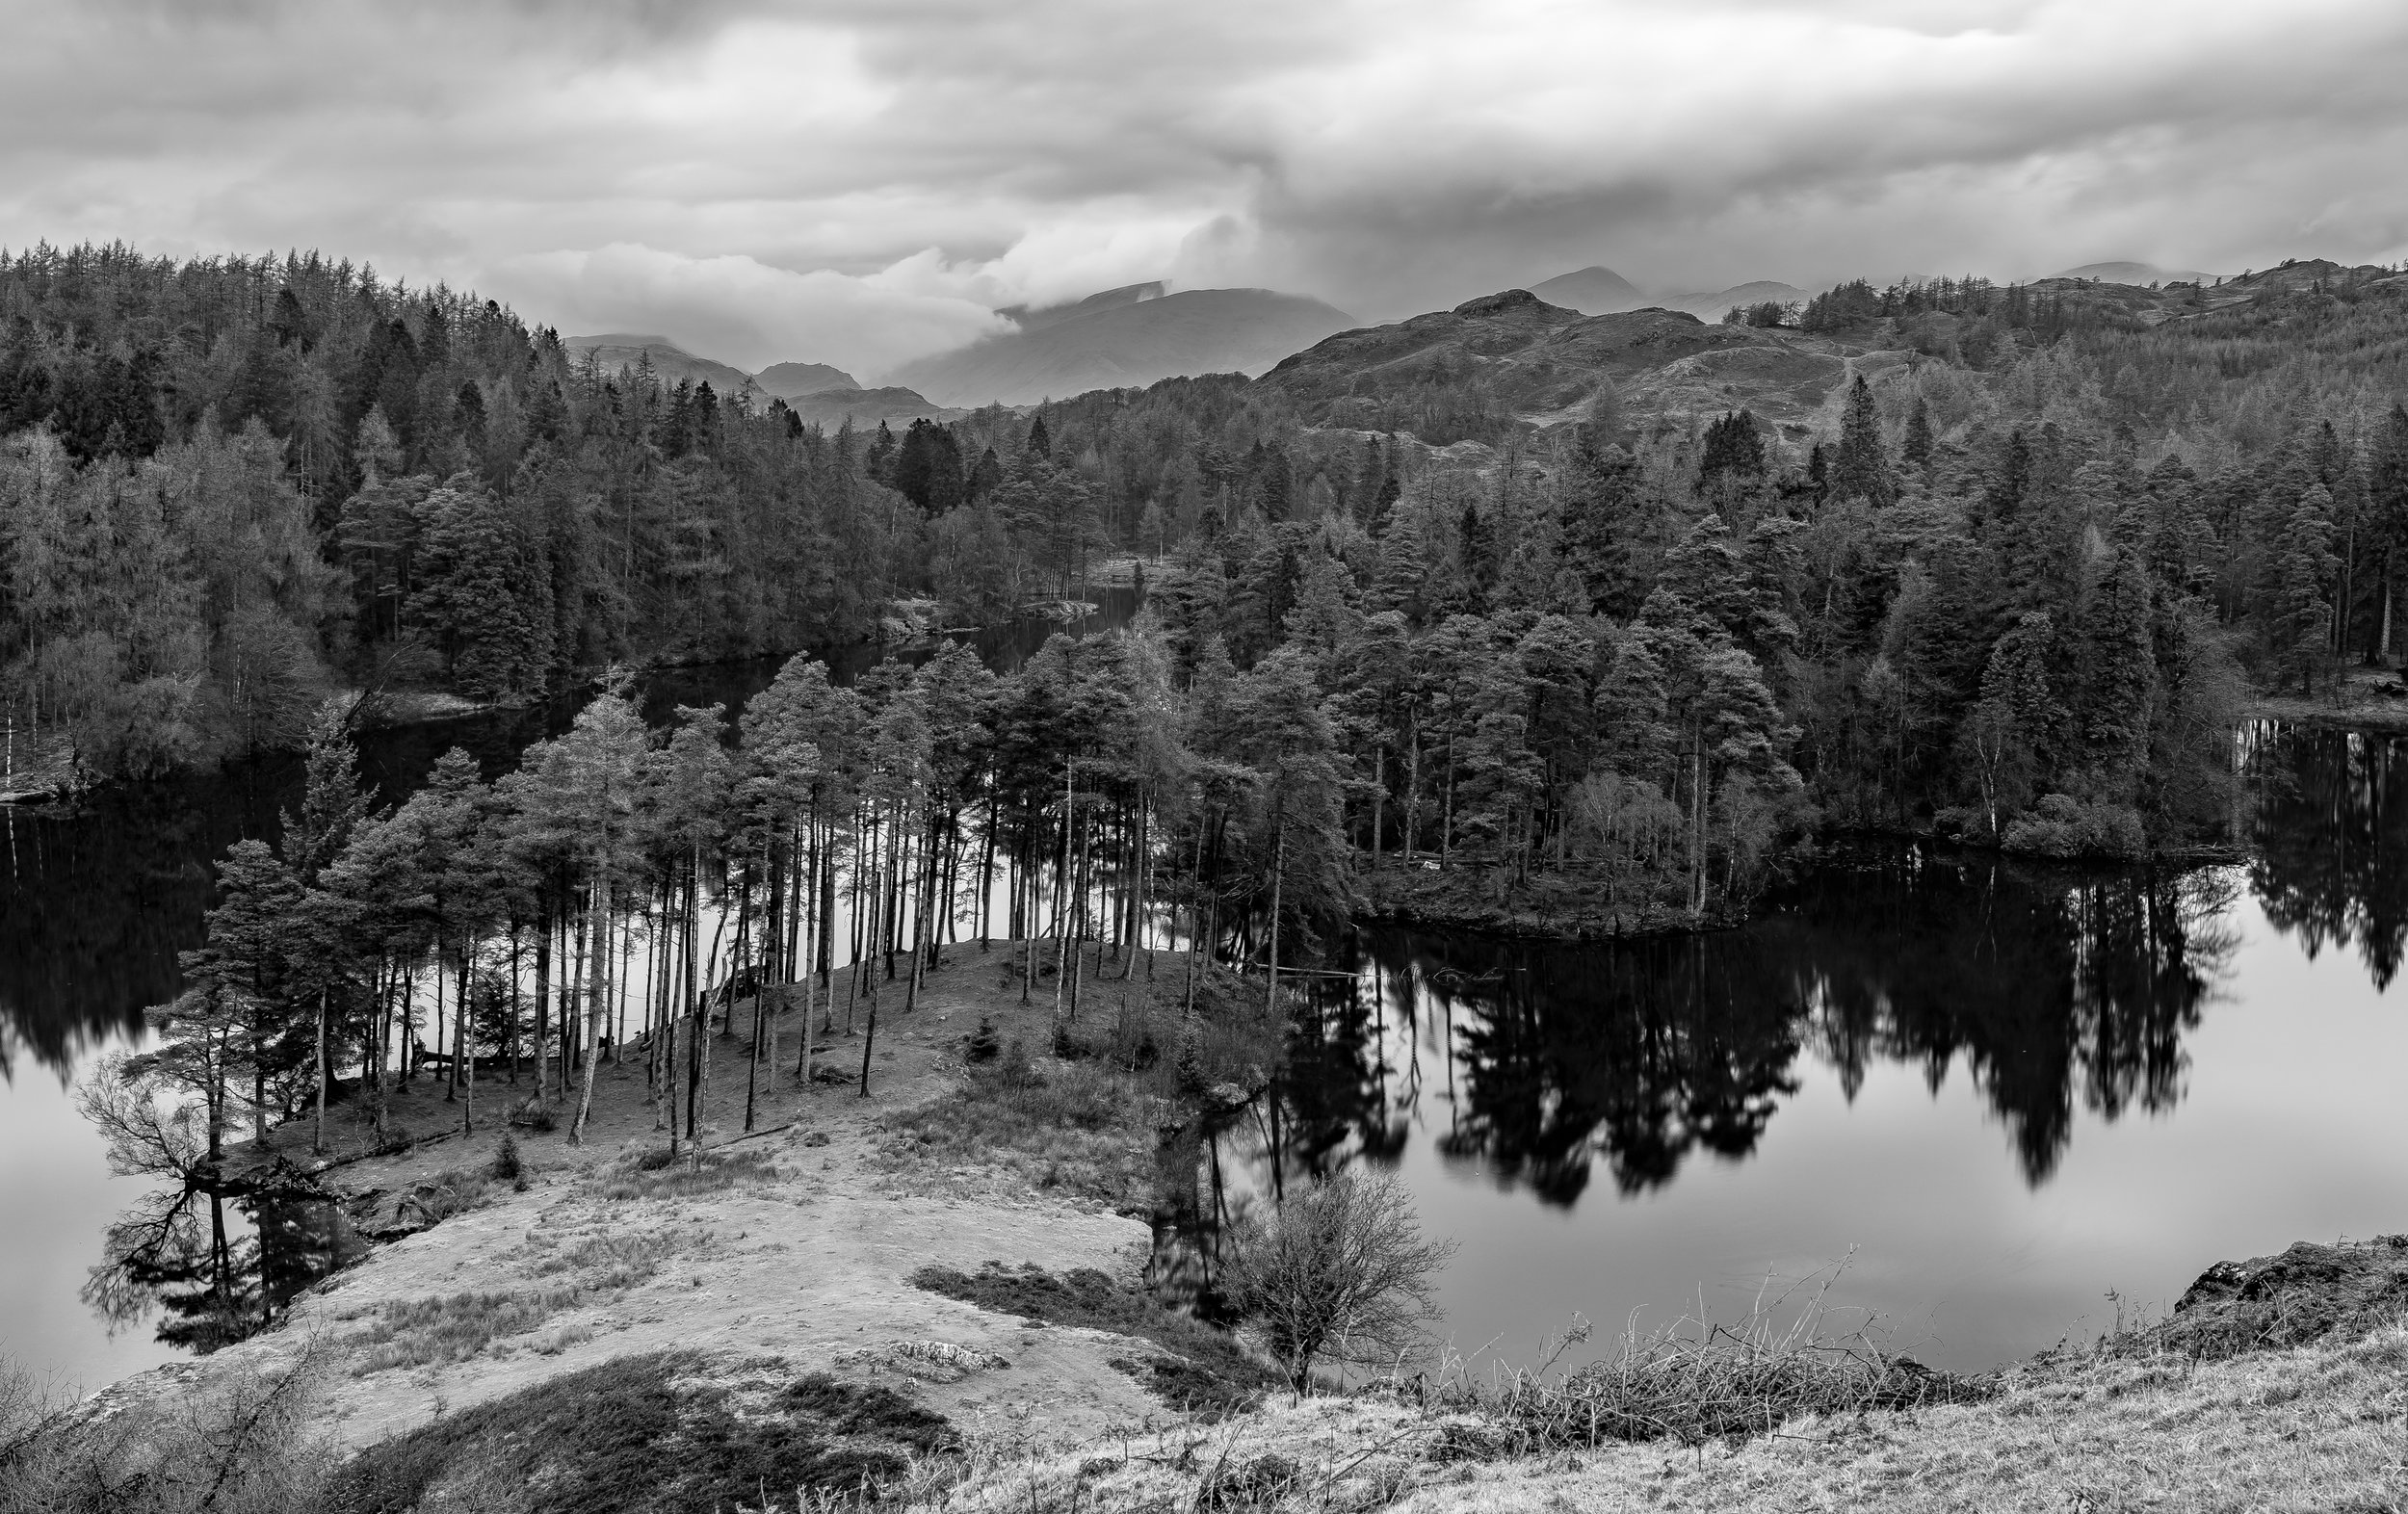 Tarn Hows, December 2018   f/11, 15 sec, 40mm. Lee IRND 4 Stop   Winter is a great time to visit Tarn Hows if you are looking for peace coupled with mood & atmosphere.